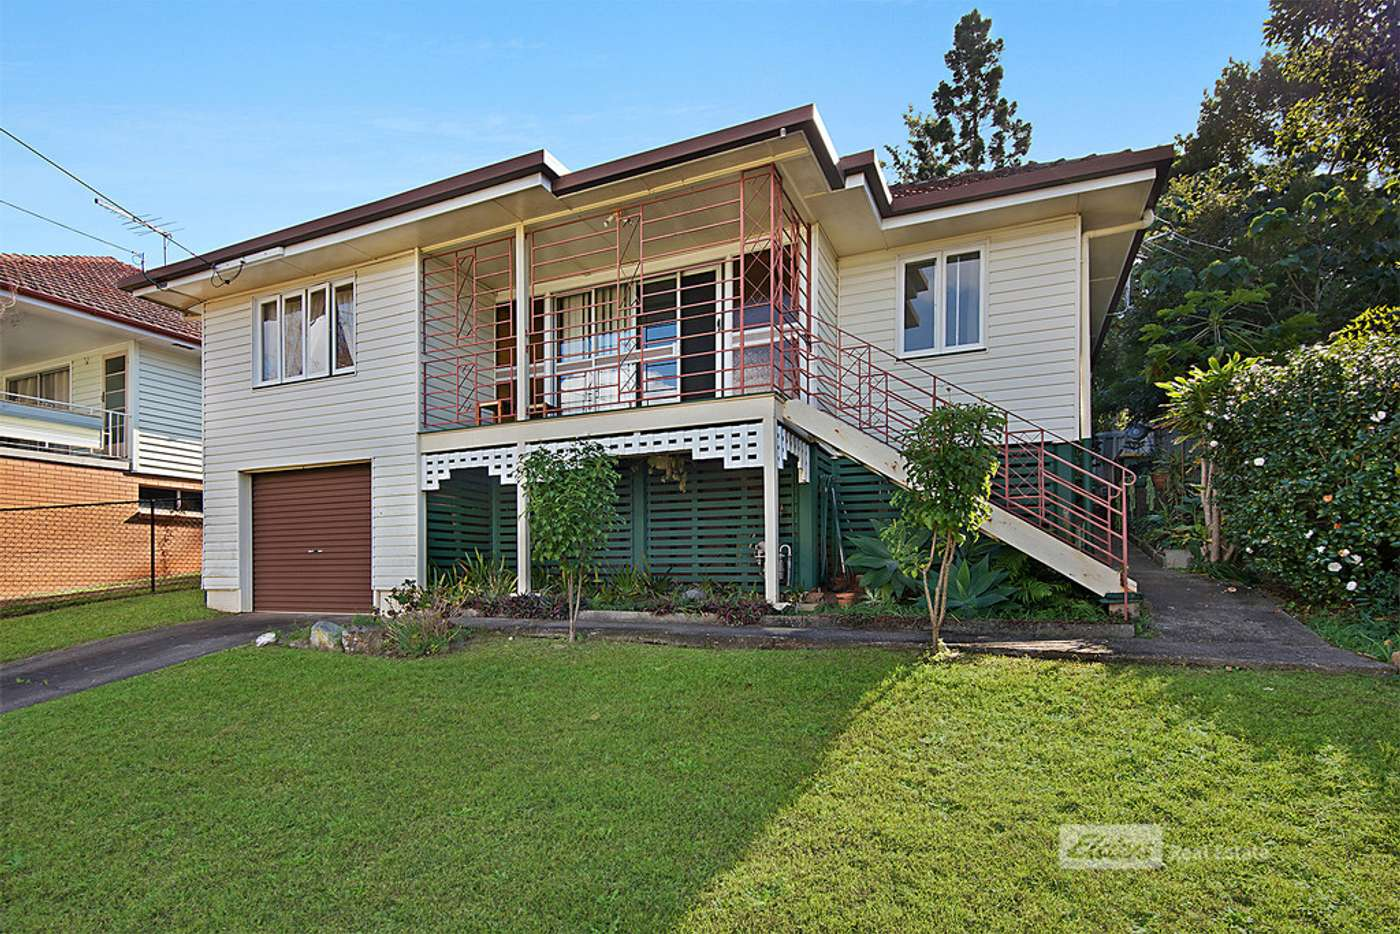 Main view of Homely house listing, 15 Benfield St, Mitchelton QLD 4053